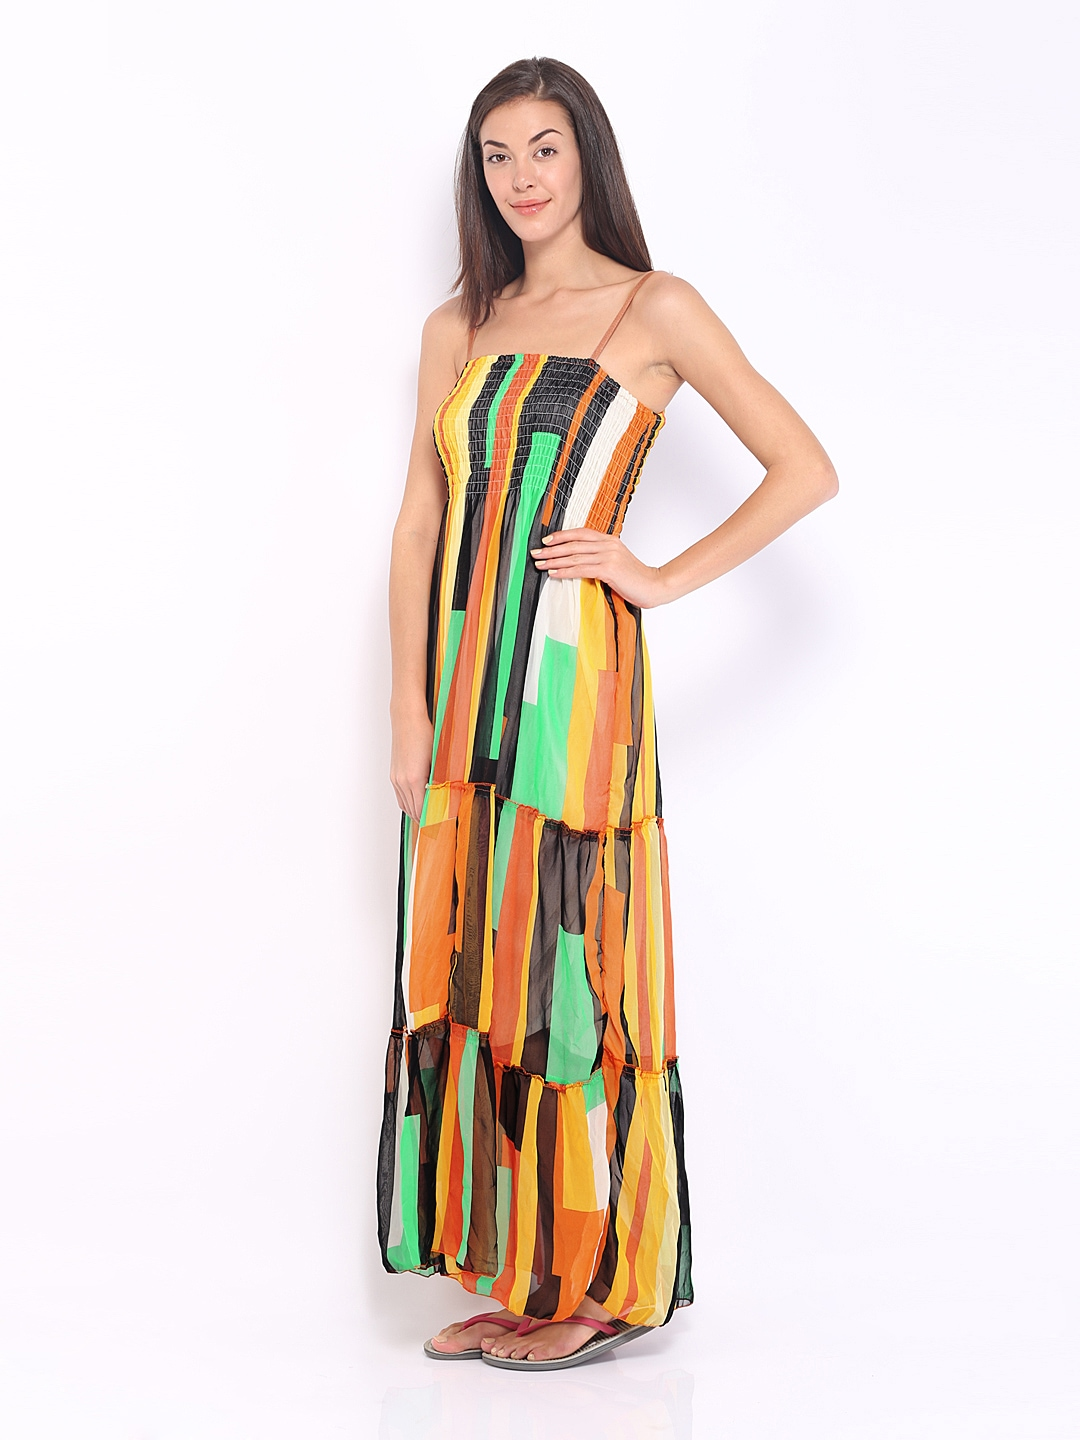 Multicolored Maxi Dress - Attend a beach party wearing our Multicolored Maxi Dress featuring a scoop neckline and a cutout back. Style with our dangling earrings/5(4).